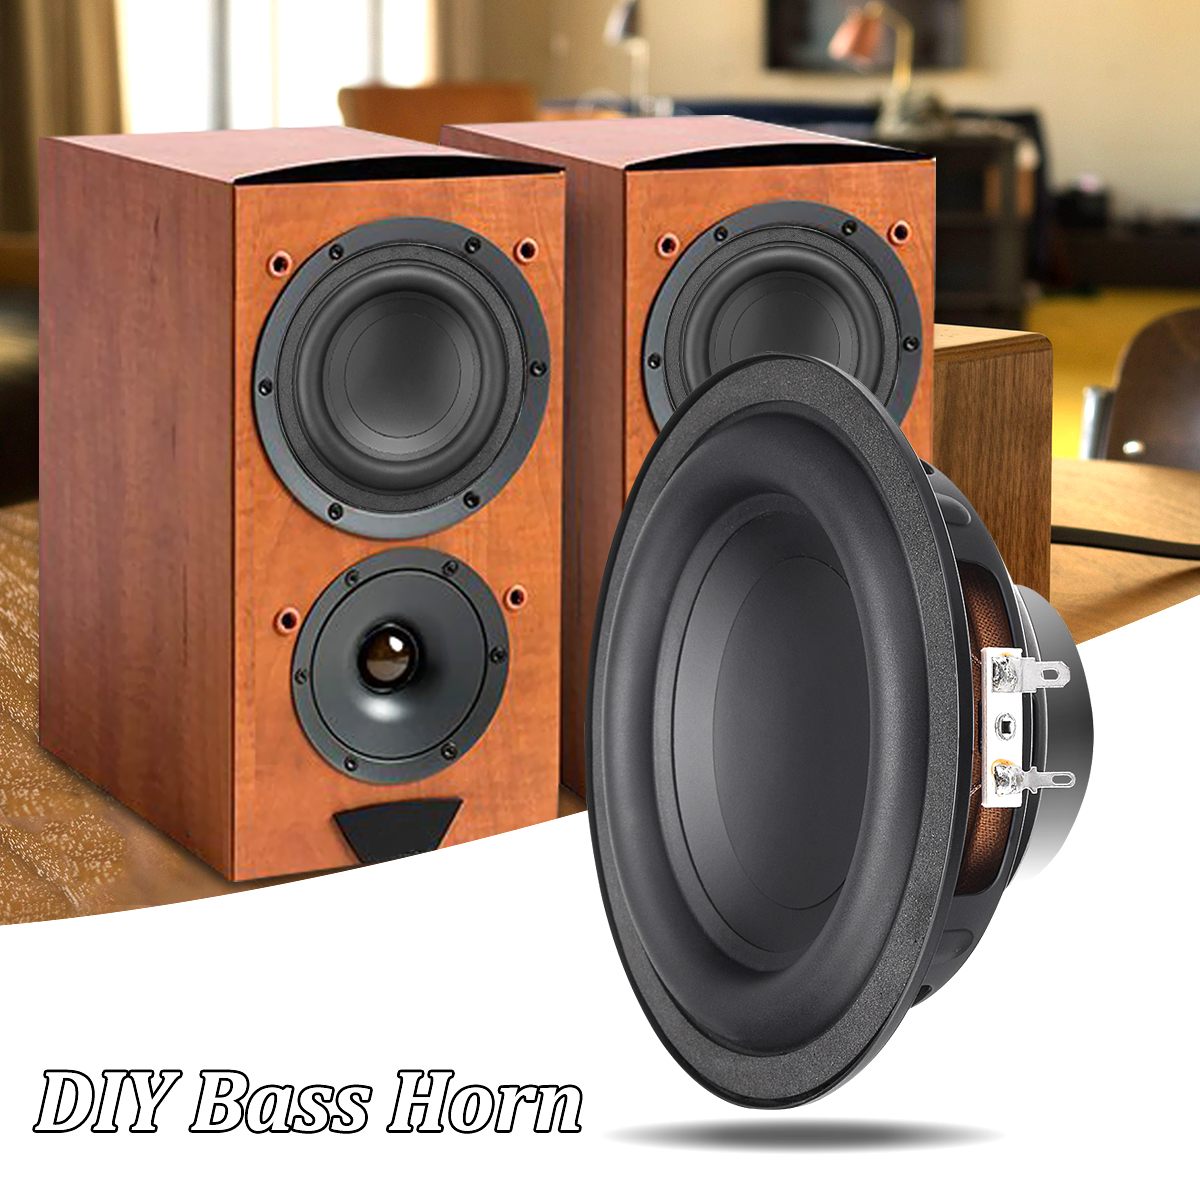 1pcs Subwoofer Speaker Unit 50W DIY Sound Box Loudspeaker ...